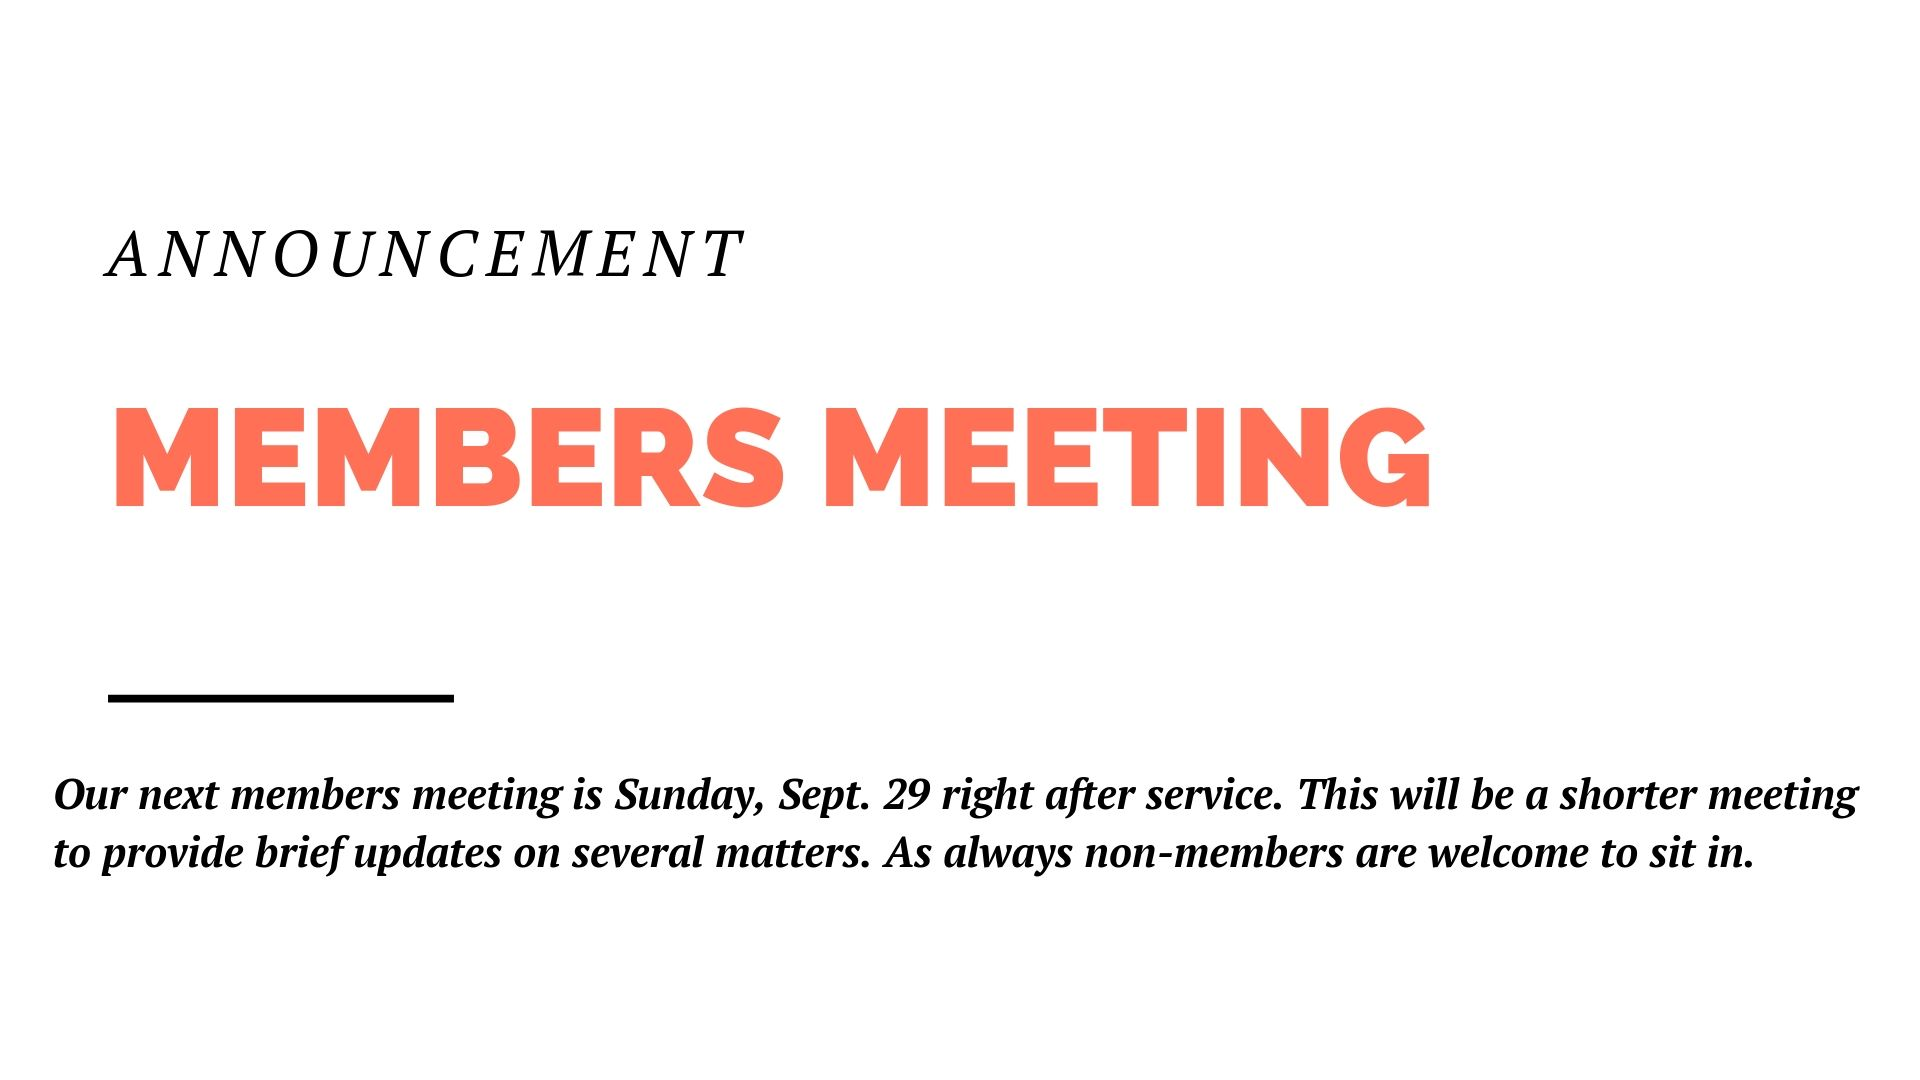 Our next members meeting is this Sunday, Sept. 29 right after service. This will be a shorter meeting to provide brief updates on several matters. As always non-members are welcome to sit in.